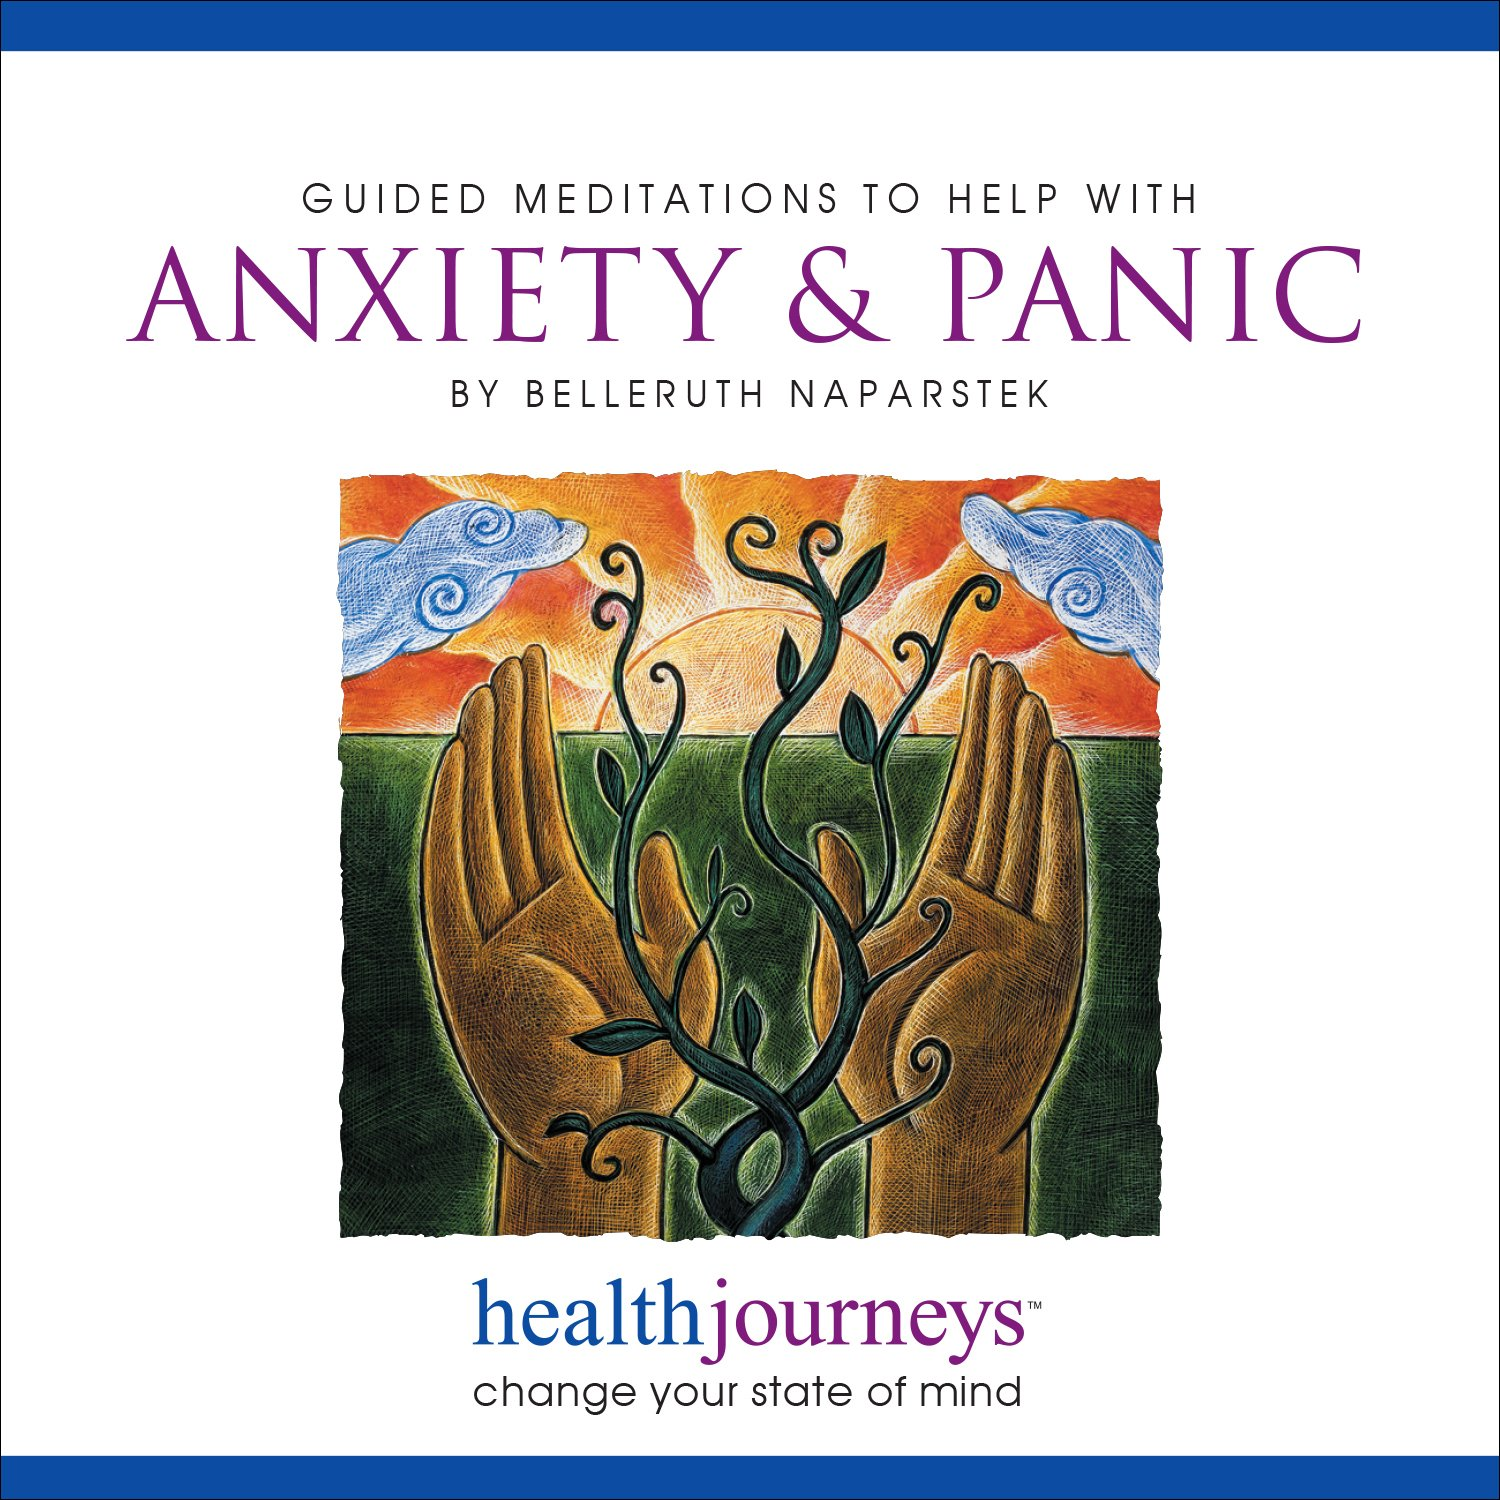 Meditation for Anxiety & Panic, Effective Approach to Treating Anxiety and Panic Attacks Naturally, Guided Meditation and Imagery with Healing Words and Soothing Music by Belleruth Naparstek by Health Journeys